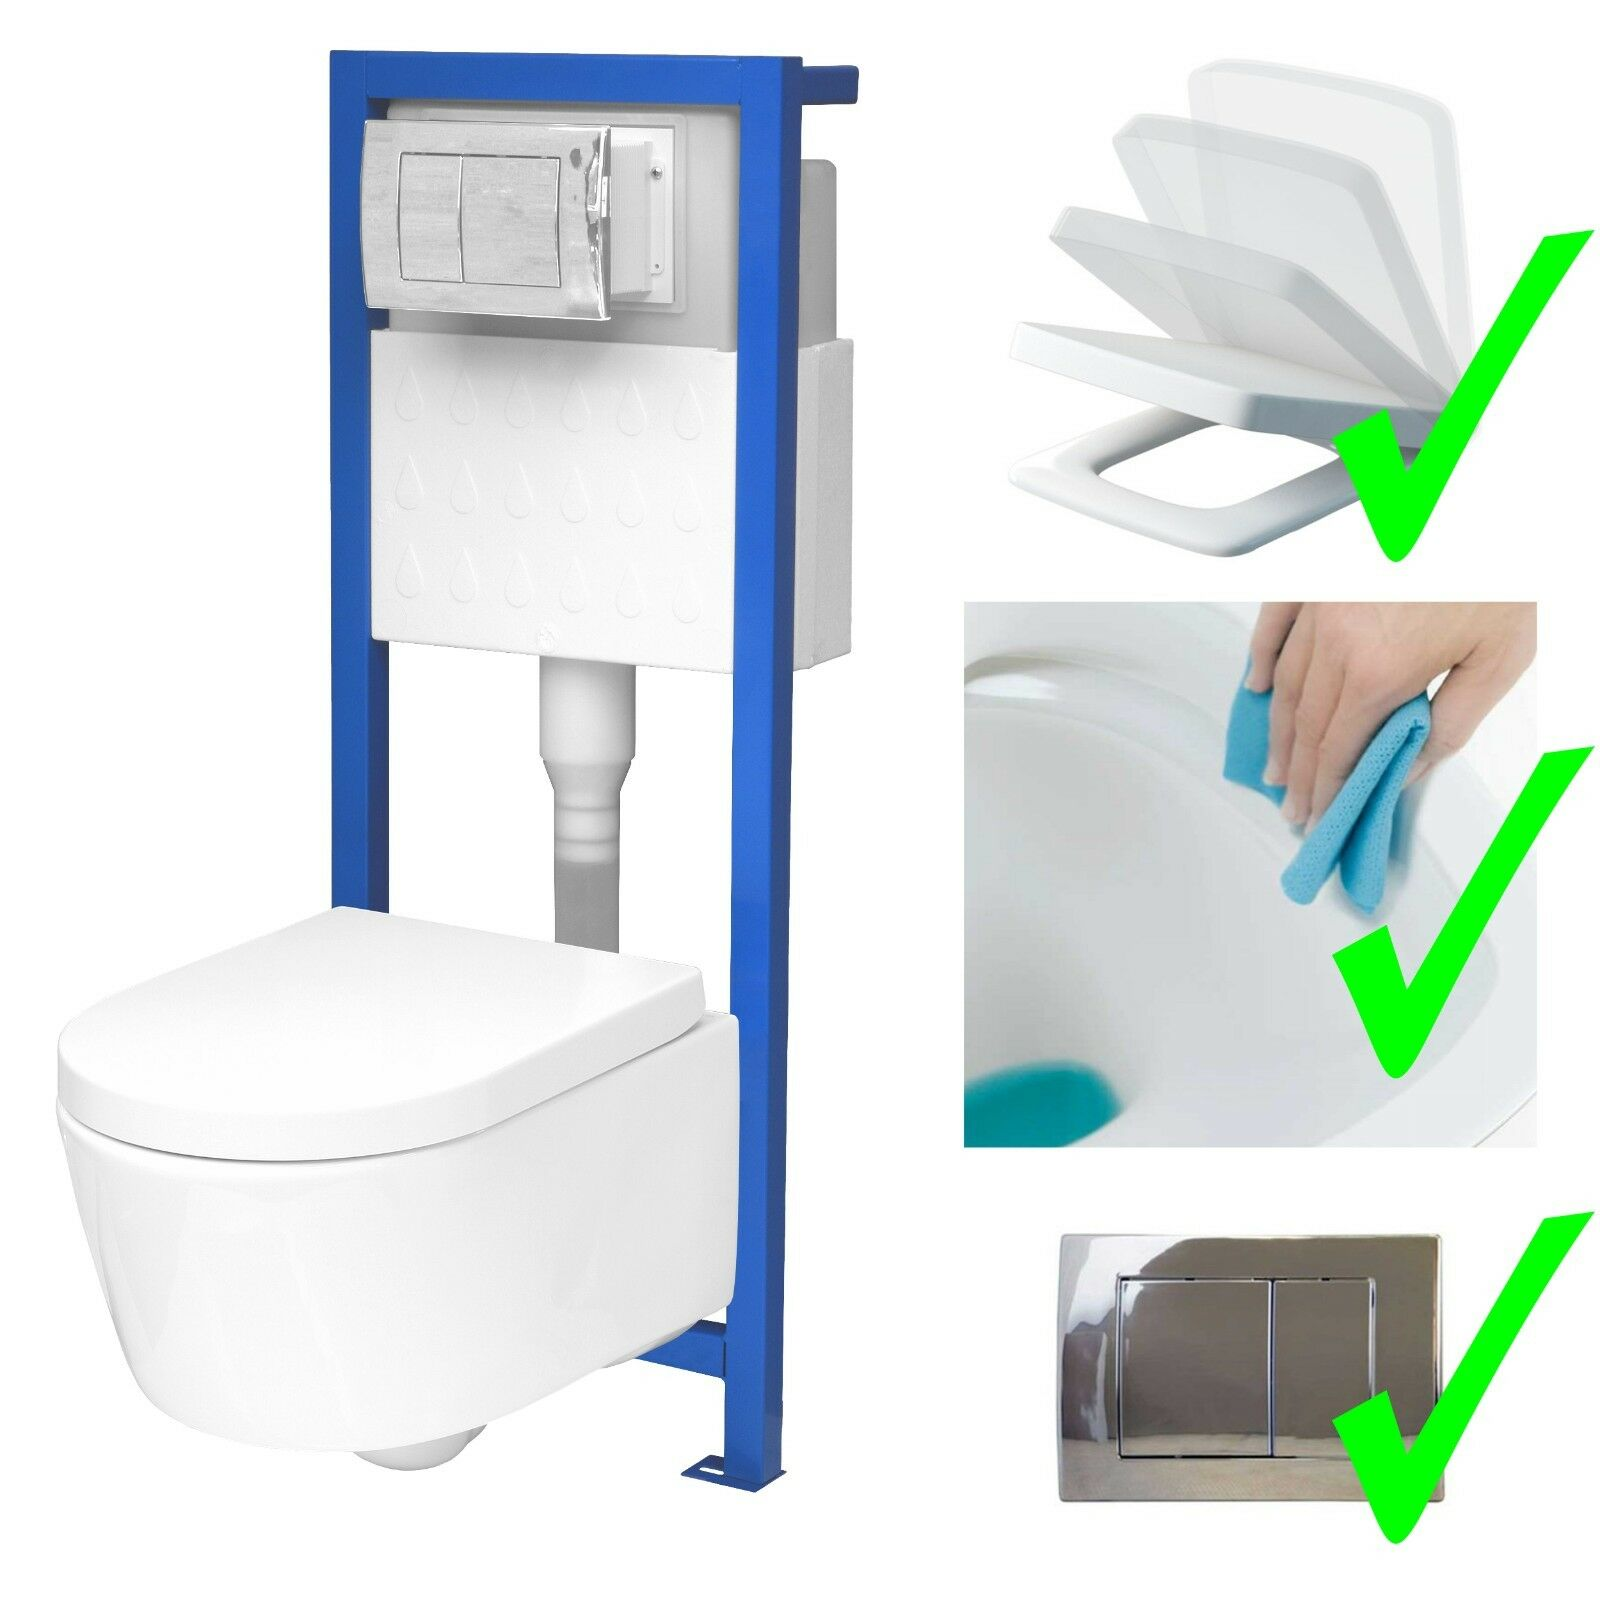 Trennwand Wc Urinal All In One Lavita Vorwandelement Wand Wc Ohne Spülrand Wc Sitz Soft Close